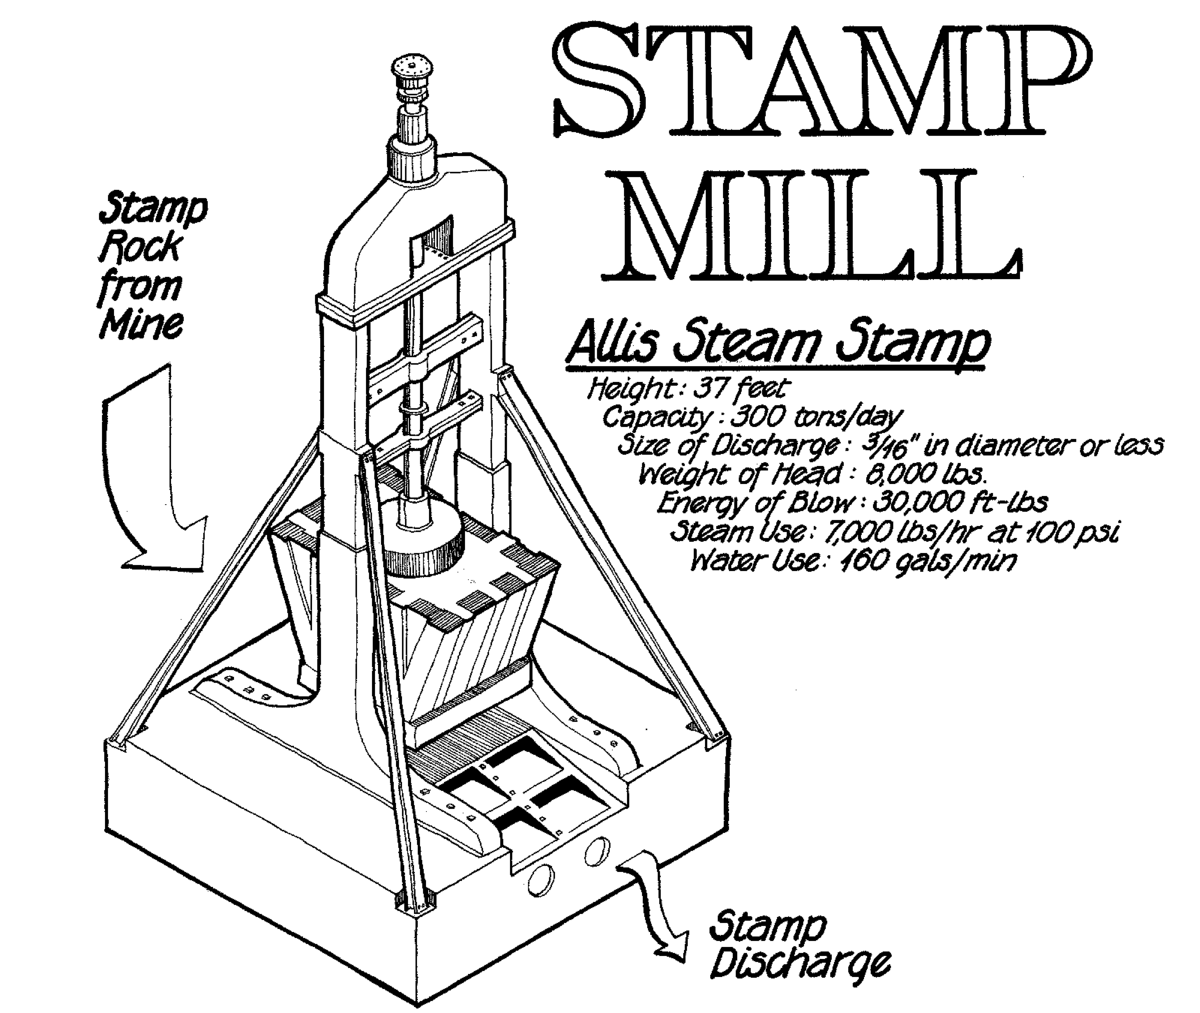 1200x1013 Stamp Mill